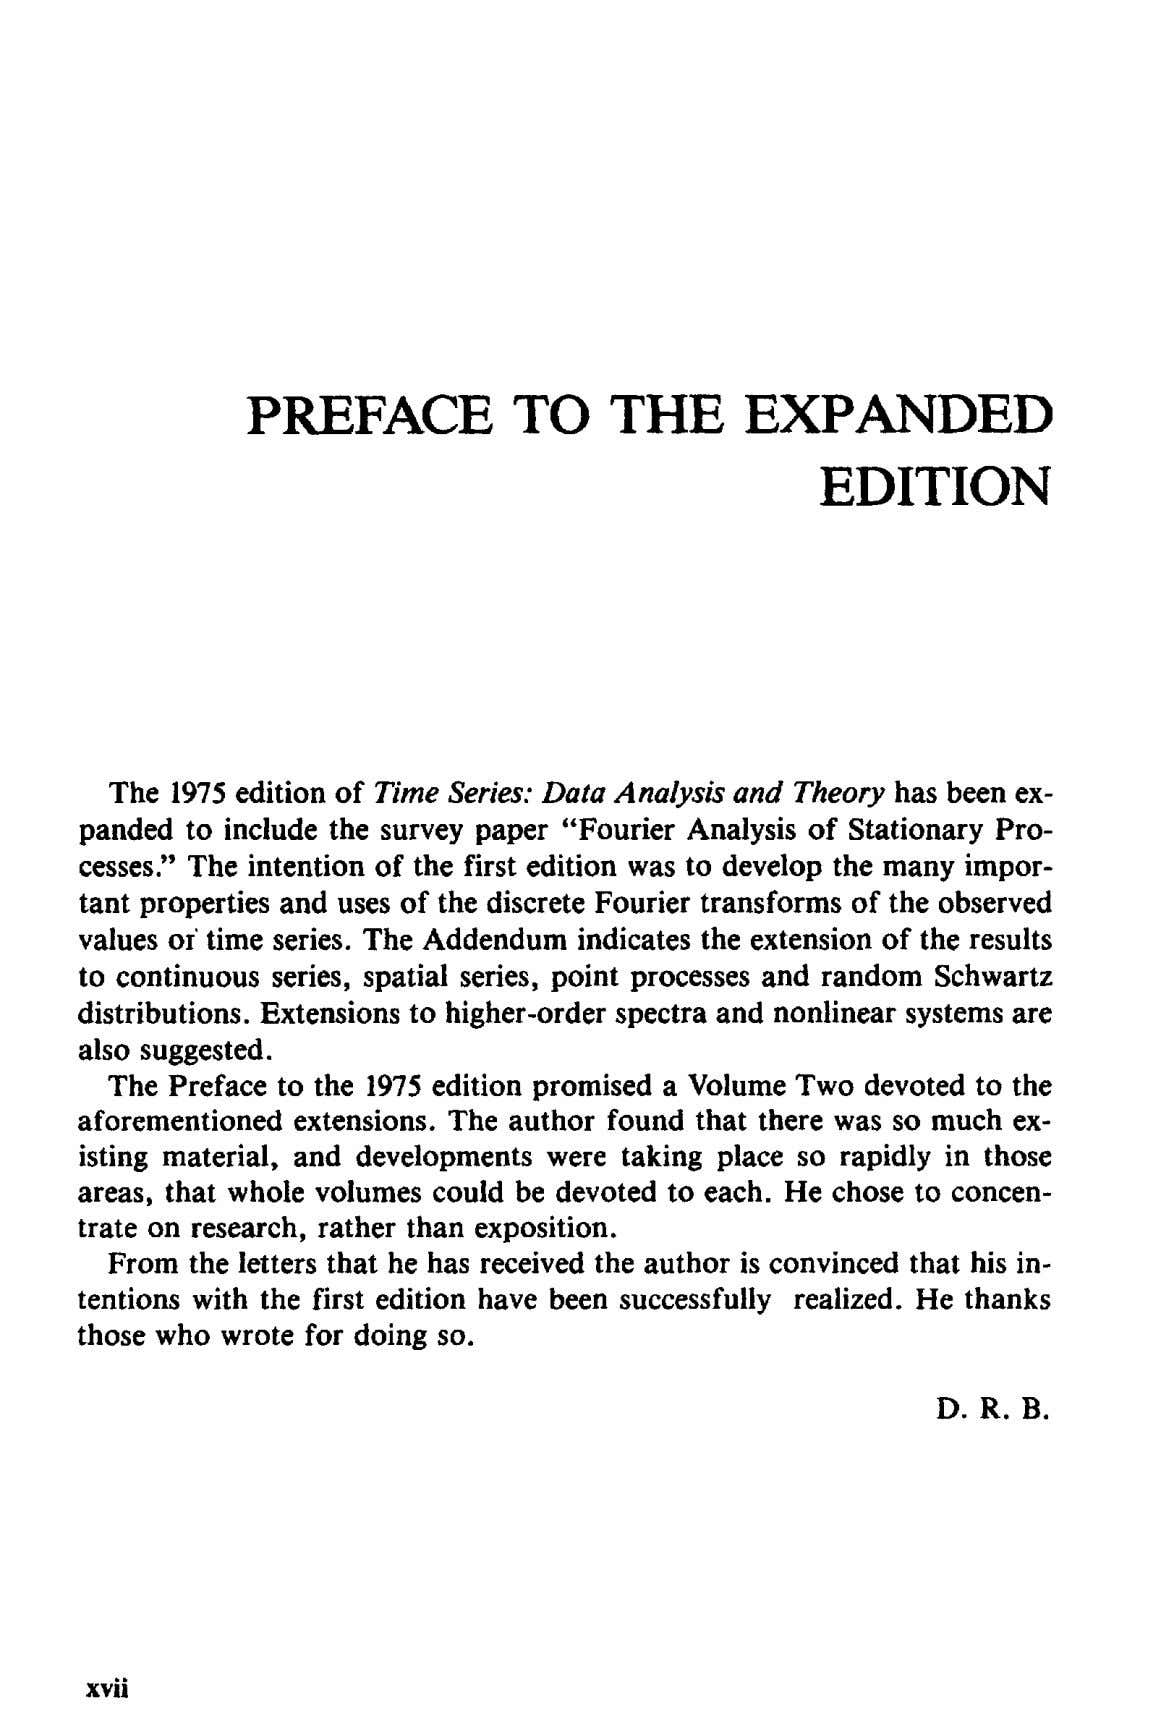 PREFACE TO THE EXPANDED EDITION The 1975 edition of Time Series: Data Analysis and Theory